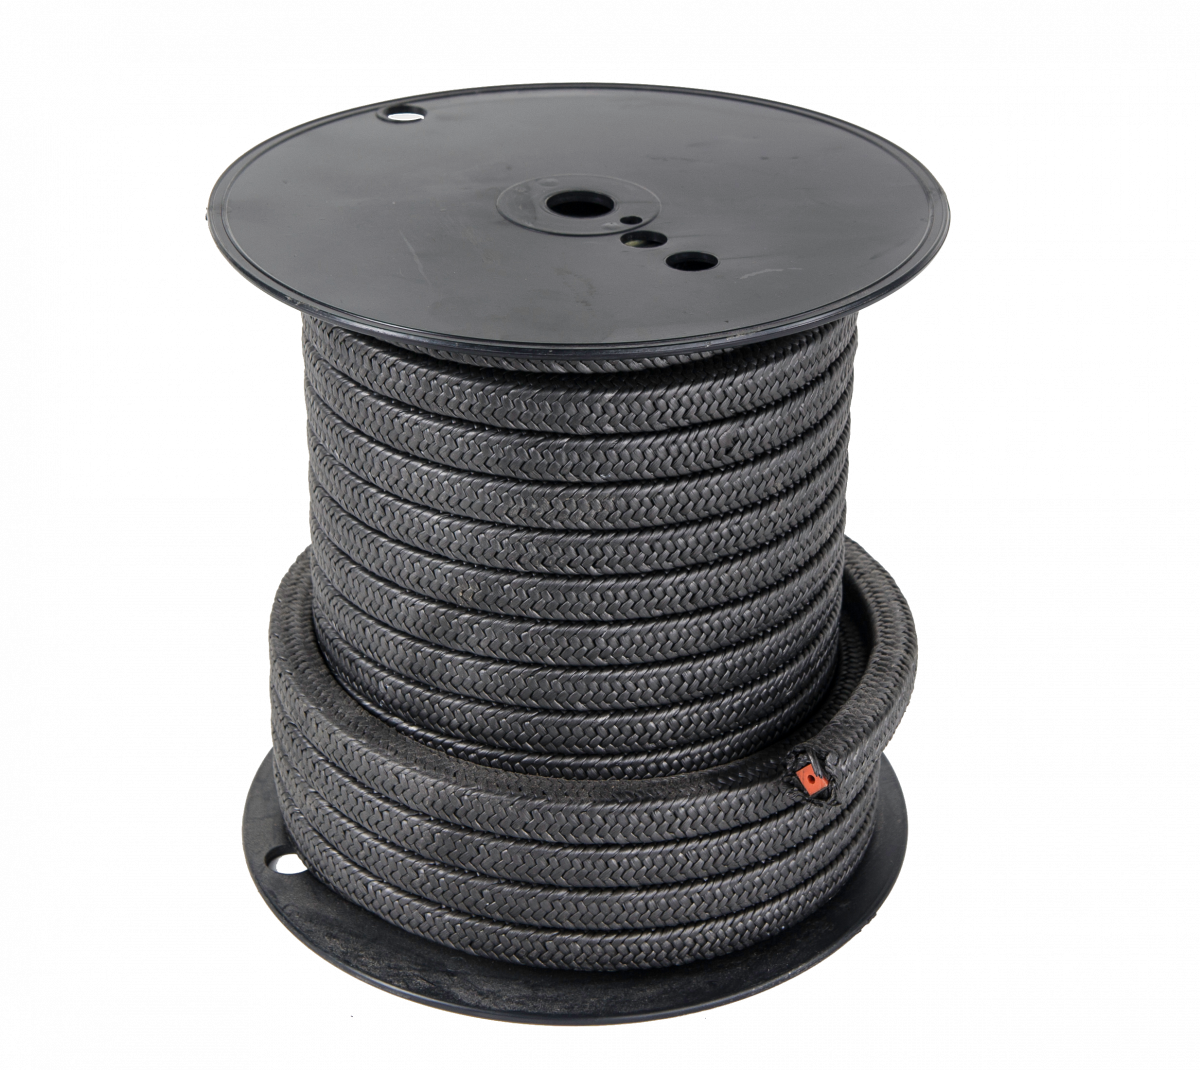 Graphite Ptfe Compression Packing With Silicone Core